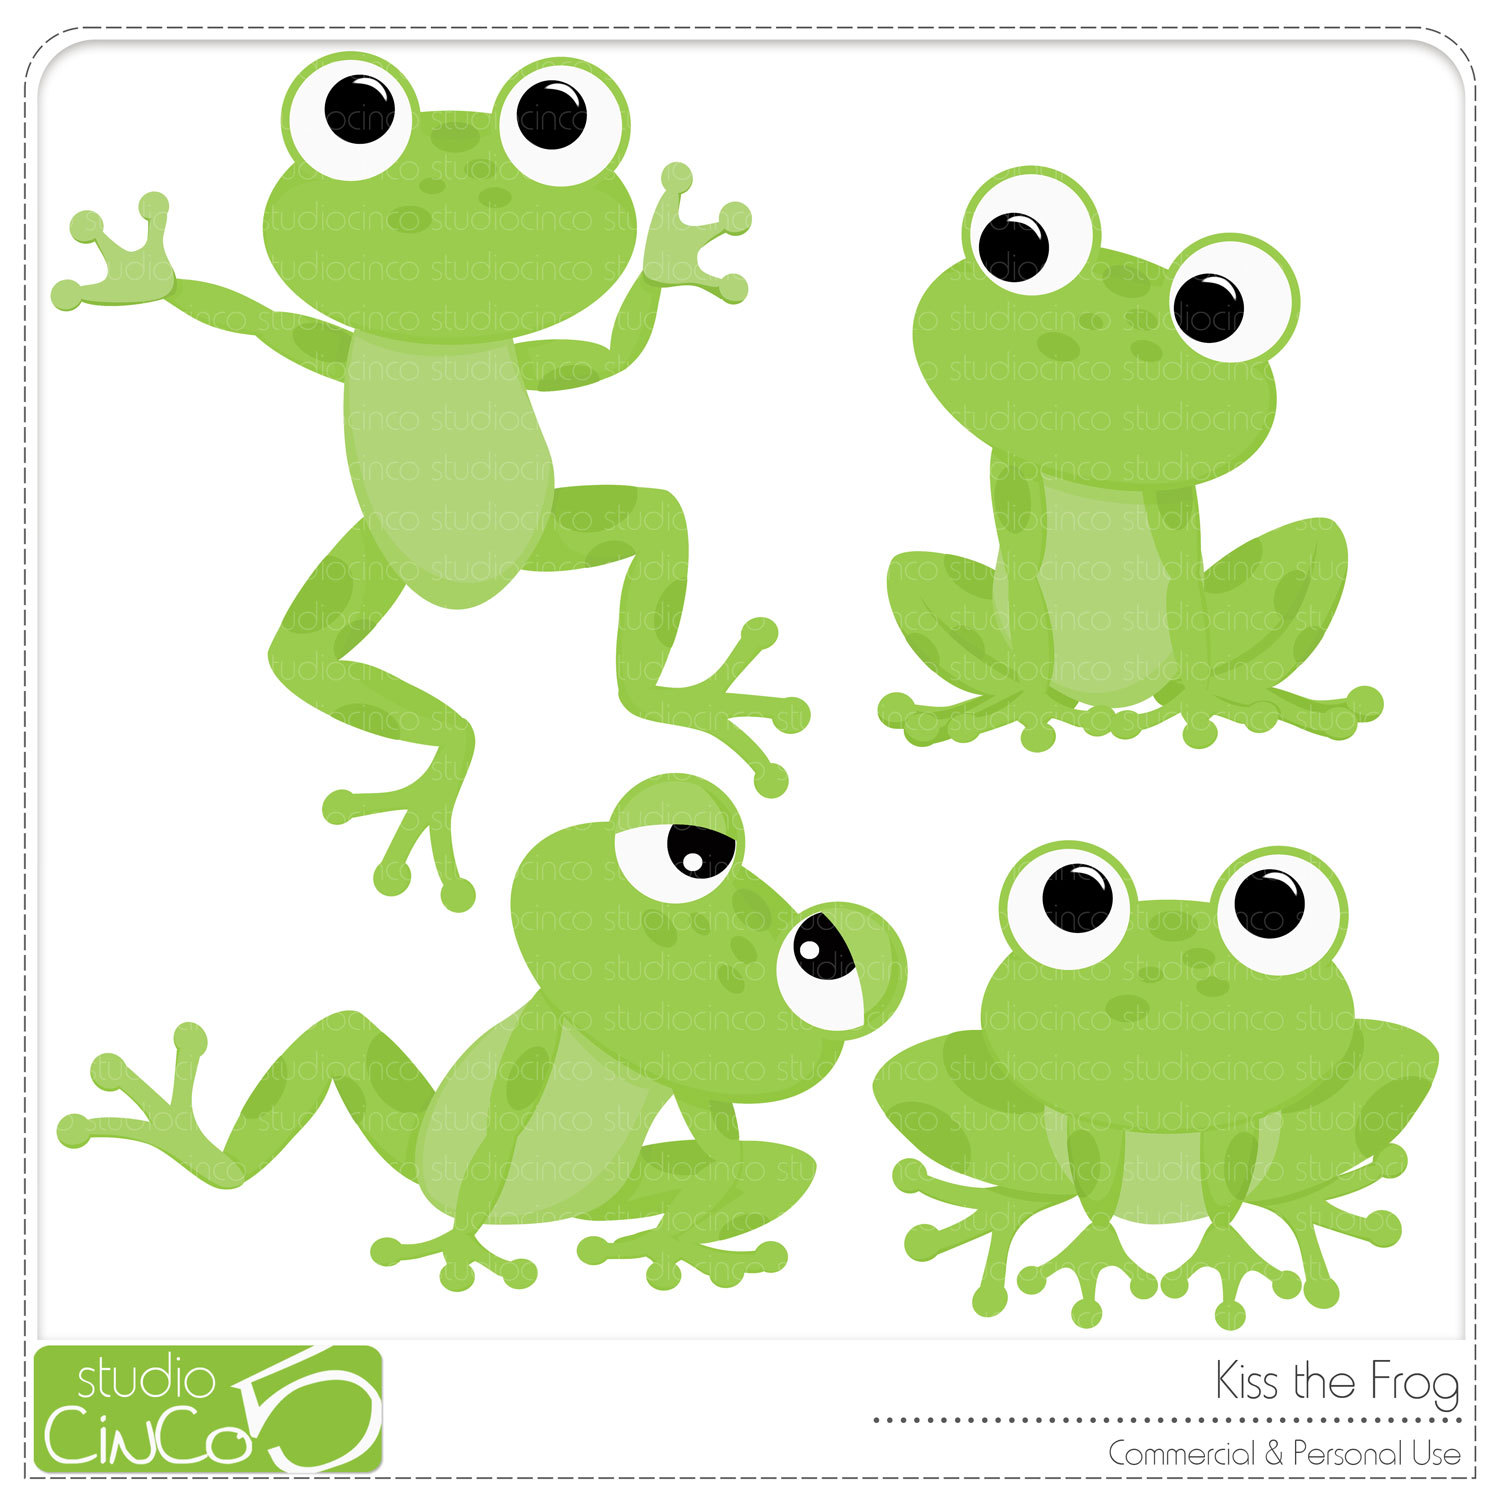 Magnificent Tree Frog clipart #13, Download drawings